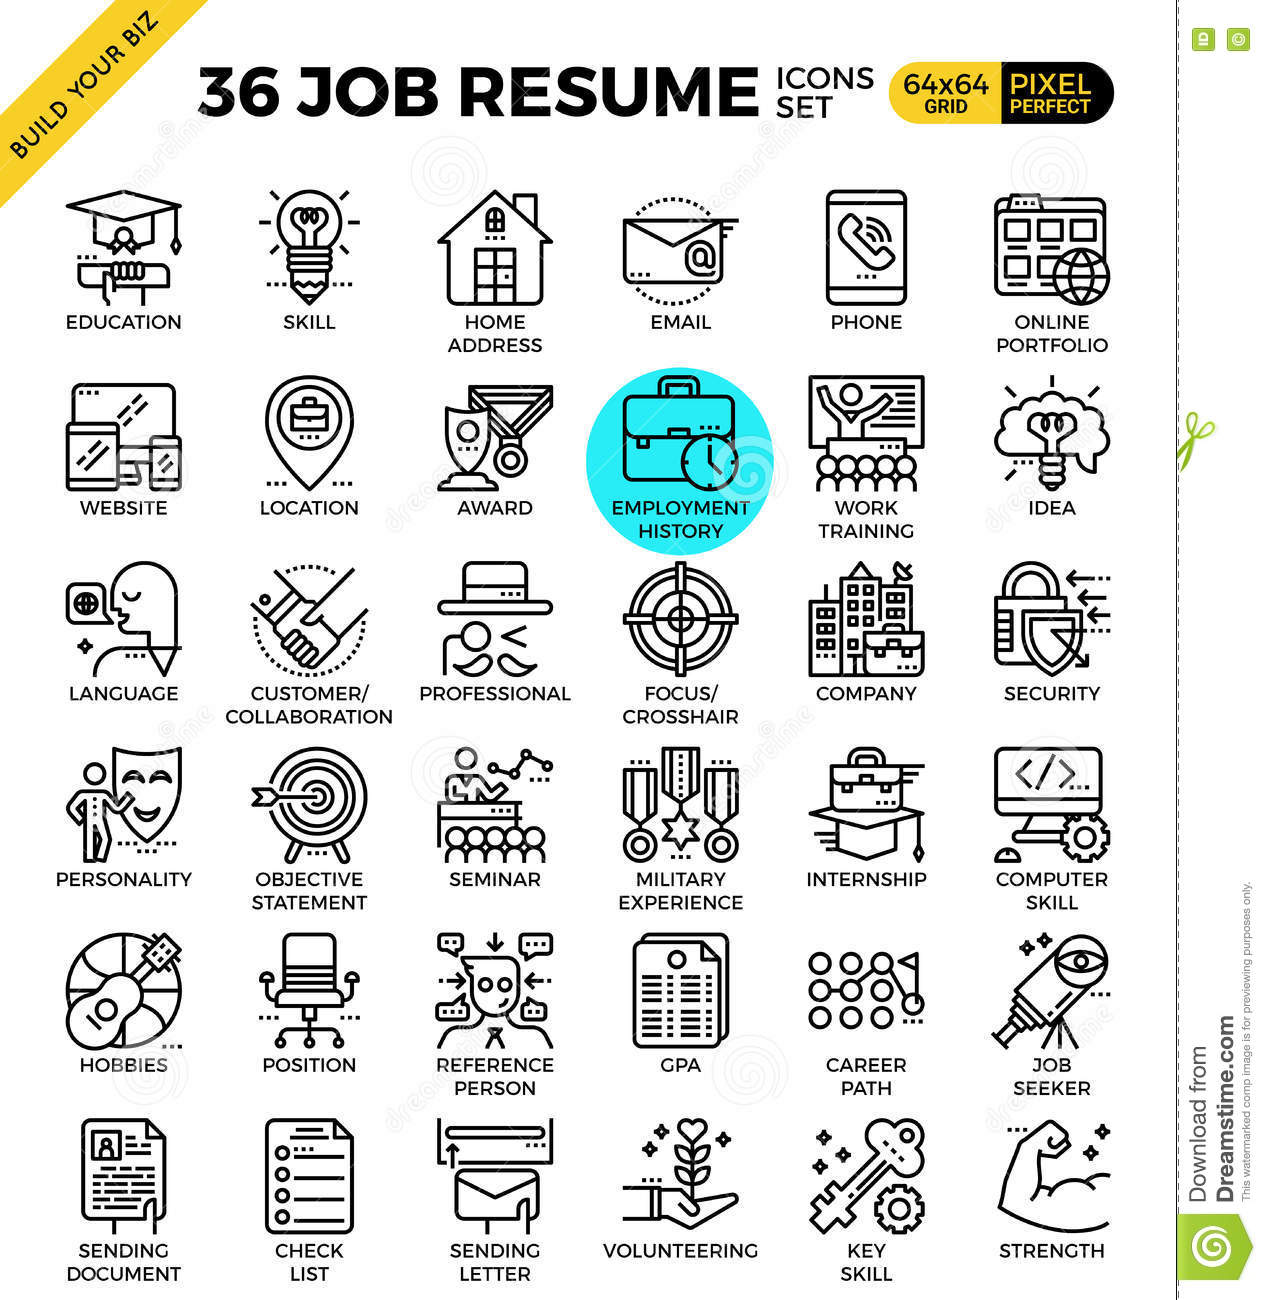 Job Resume Icons Stock Vector Illustration Of Call Business 73174892